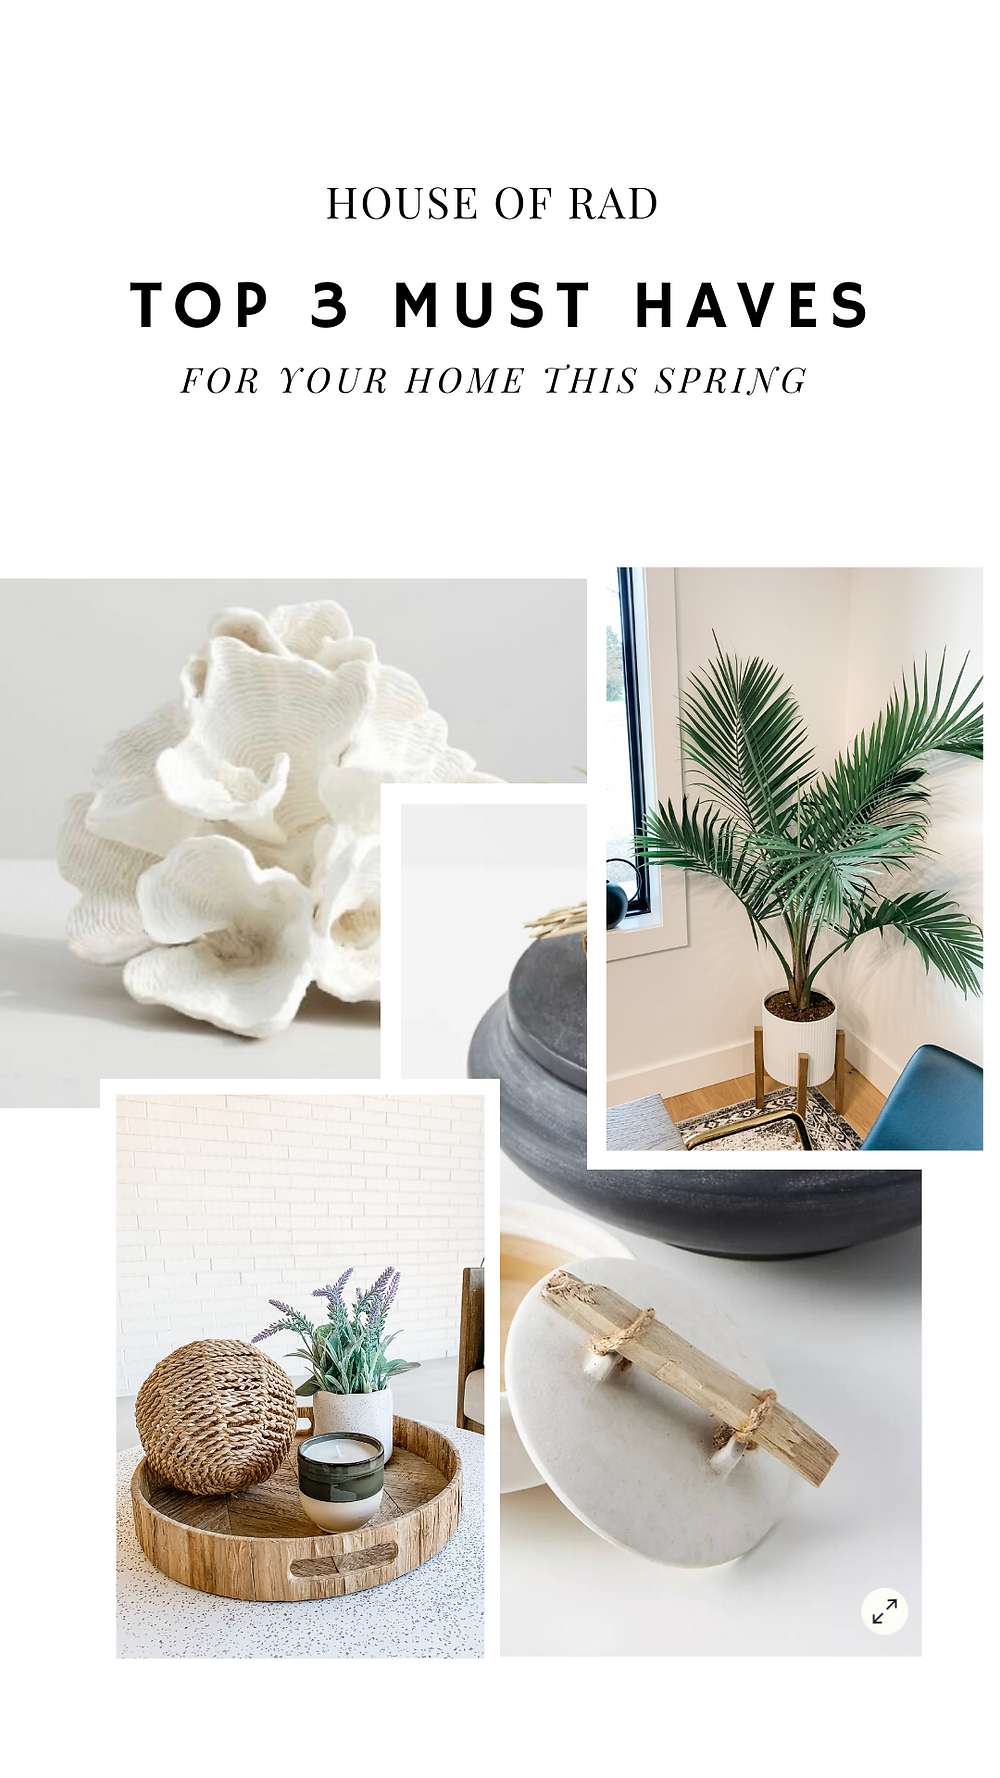 TOP 3 HOME MUST HAVES FOR SPRING